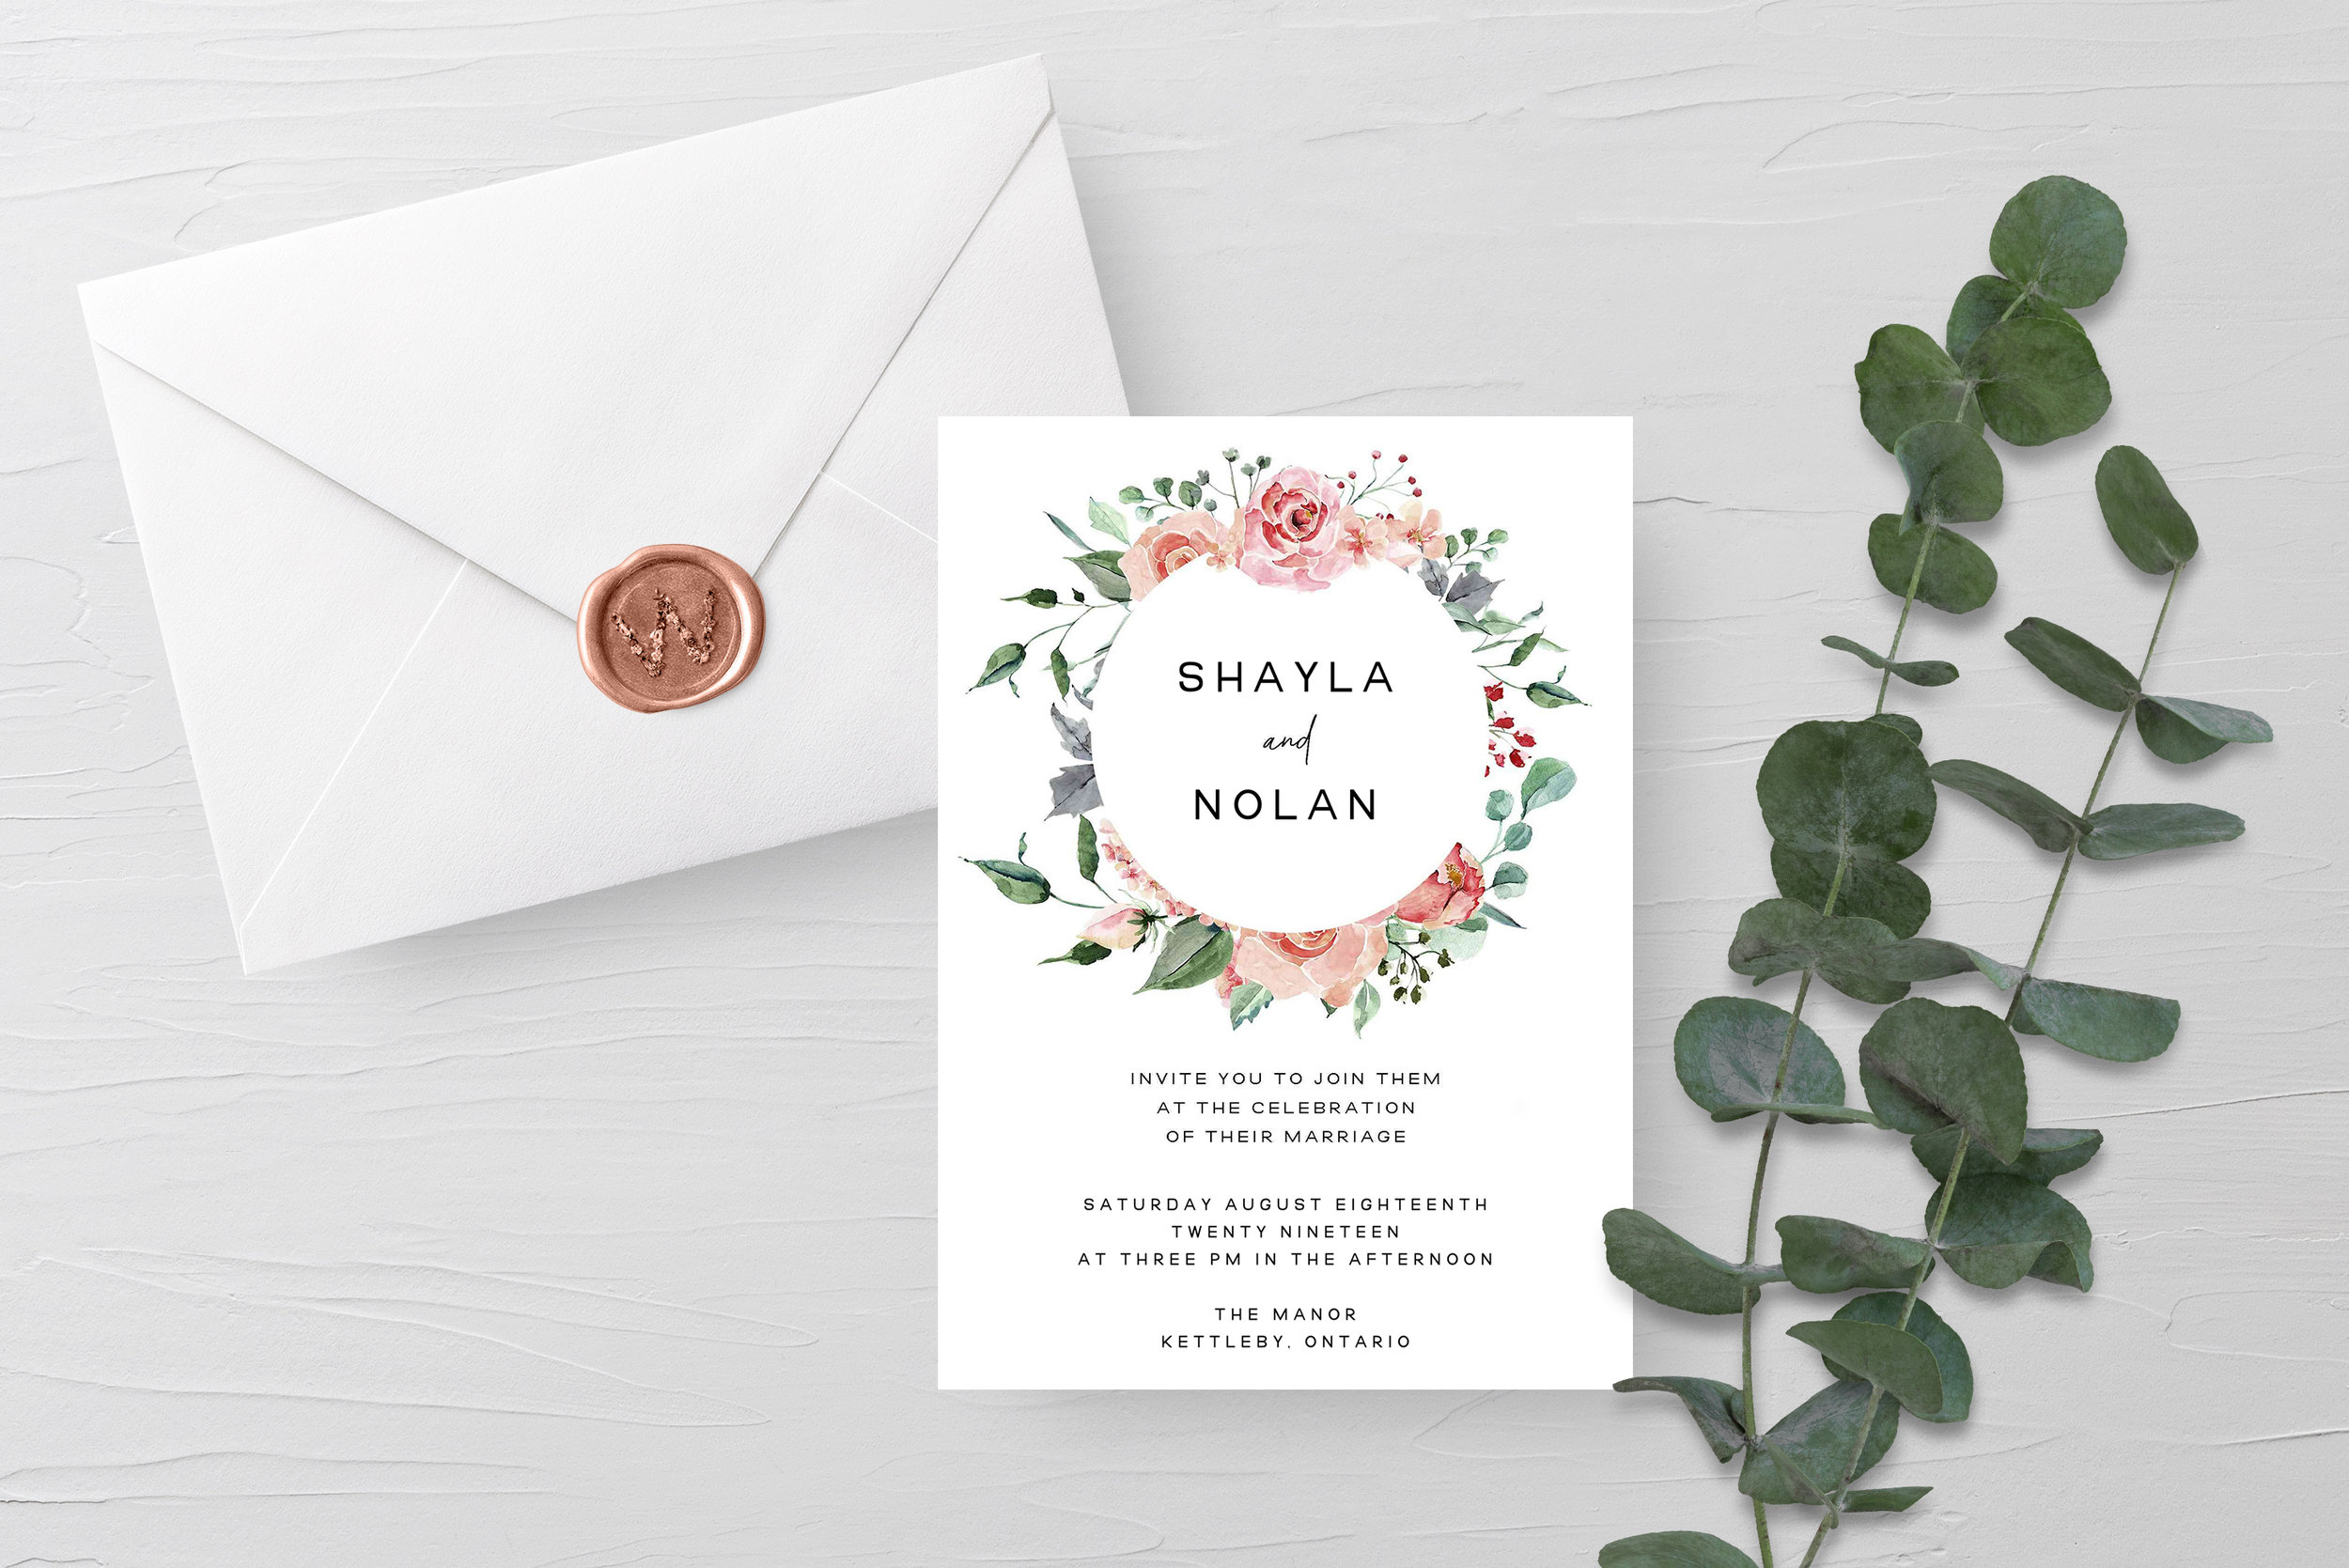 Wedding-Invitation-Five-Tips-Wildflower-Weddings-Co.jpg